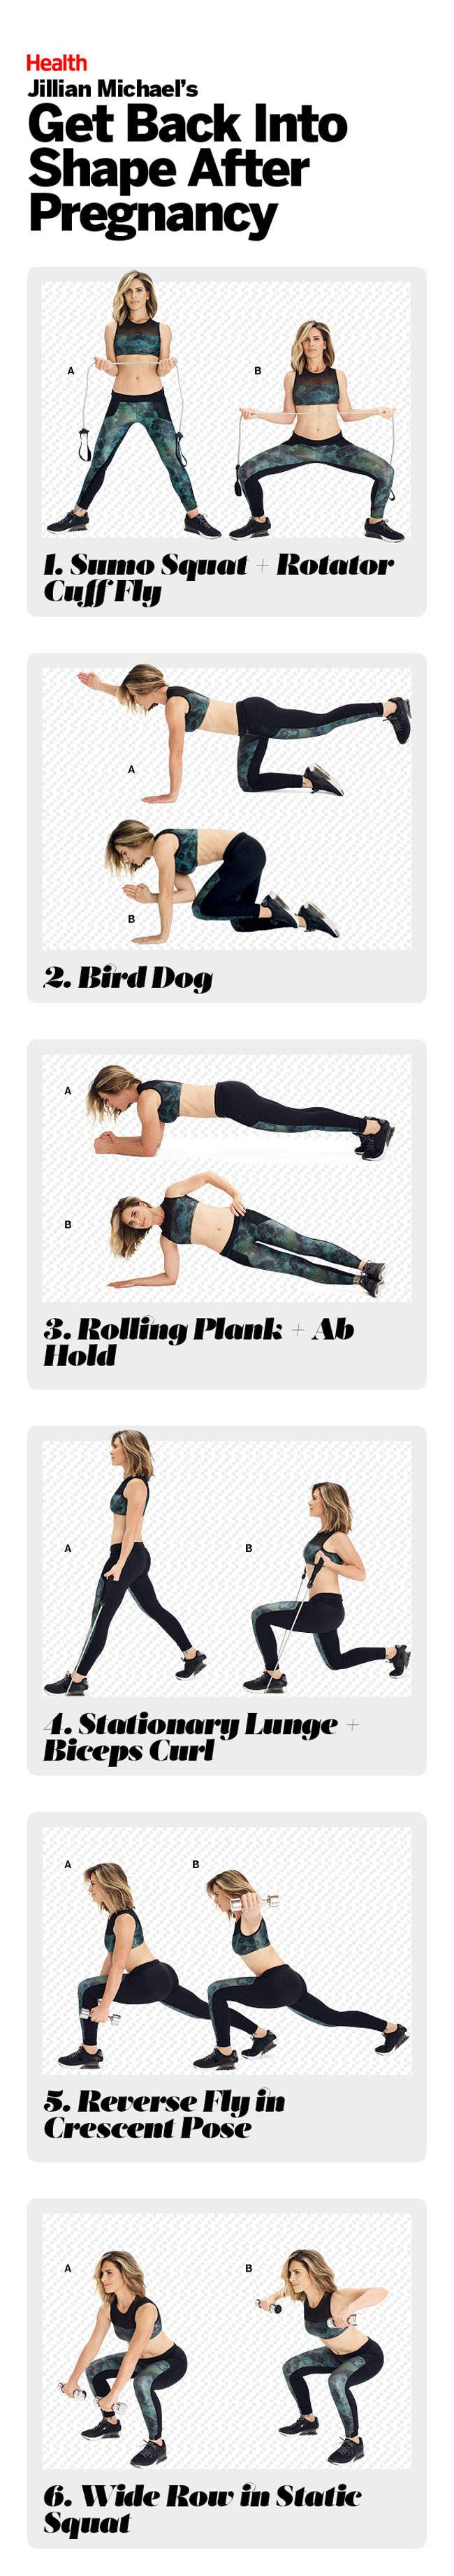 Pregnancy does a number on your body, but it is possible to get your strength, symmetry, and balance back. Follow this at-home post-pregnancy workout from Jillian Michael to strengthen your core, hips, and glutes after giving birth.